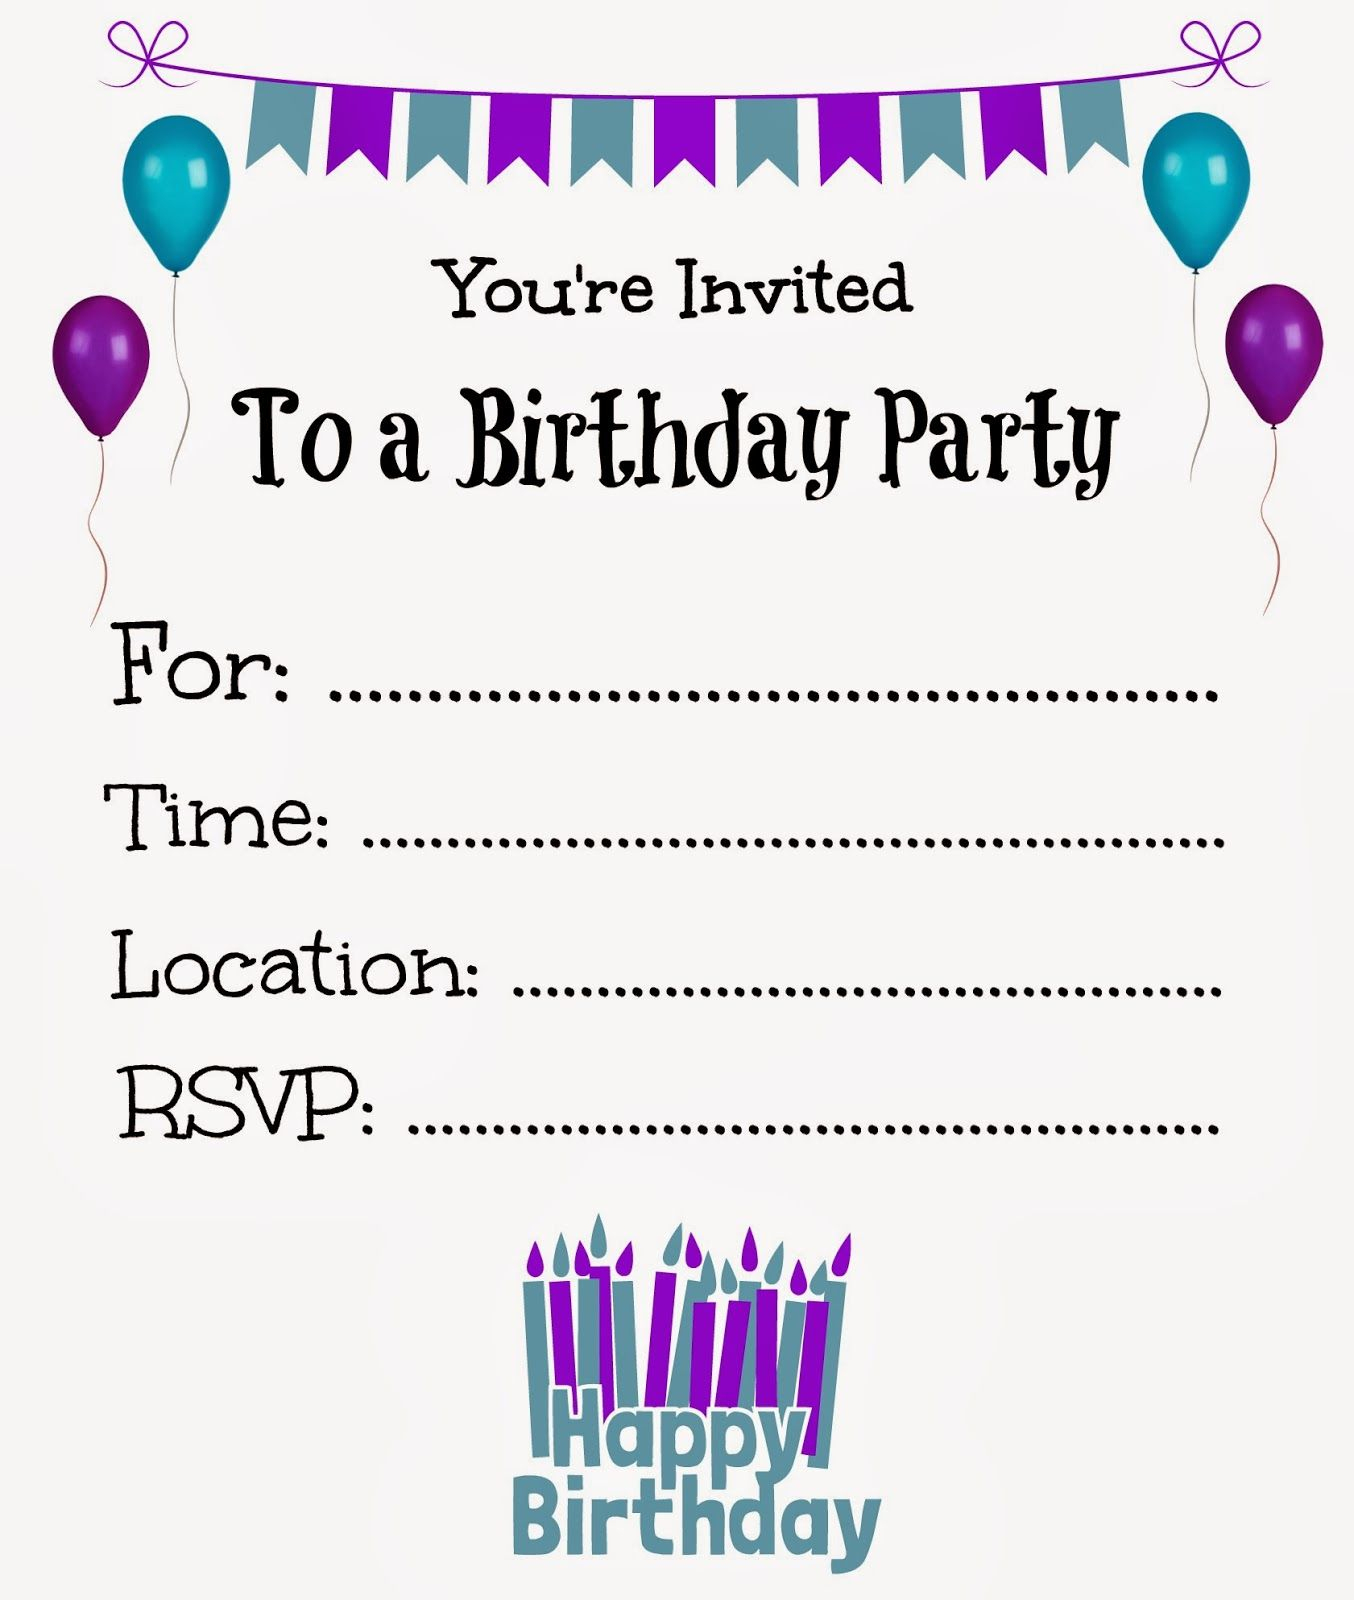 Free Printable Birthday Invitations For Kids #freeprintables - Free Printable Birthday Invitations For Kids